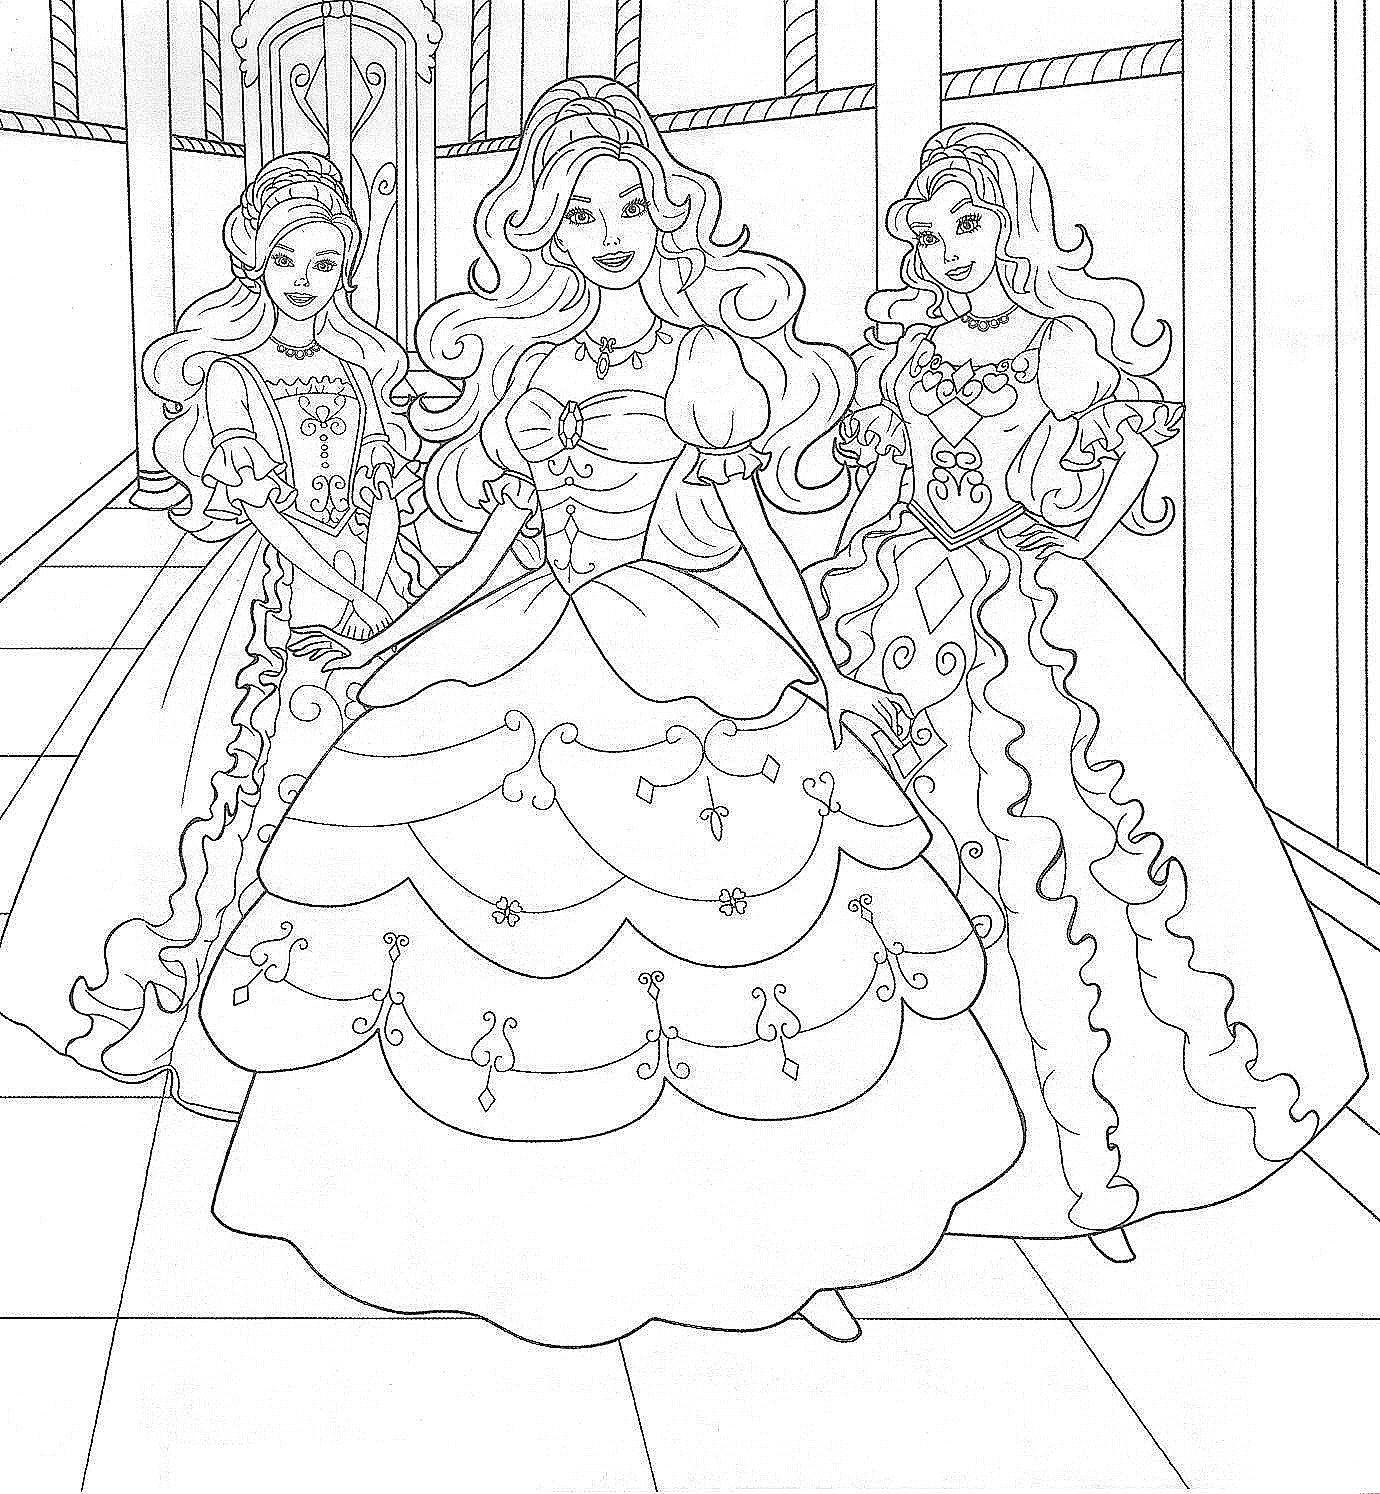 barbie movies photo barbie coloring pages - Barbie Dream House Coloring Pages